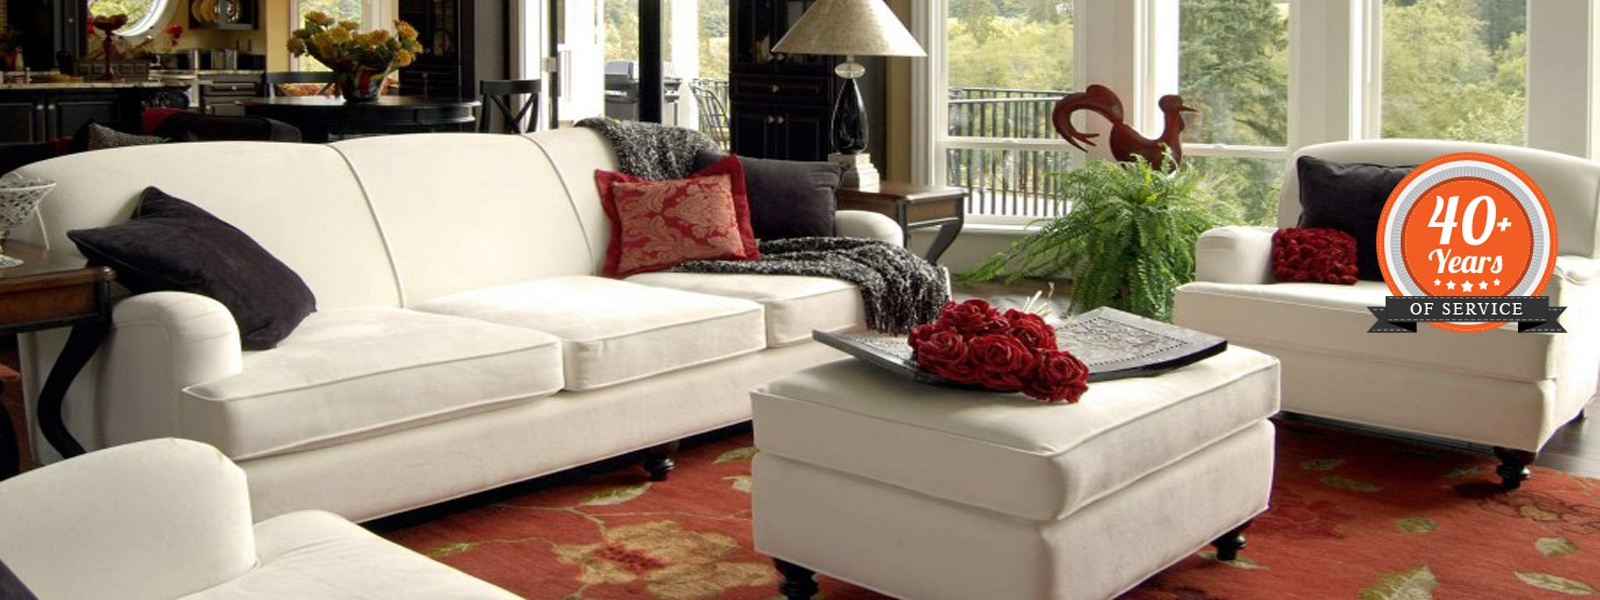 Sofa Service Services Provided Kns Rajan Services